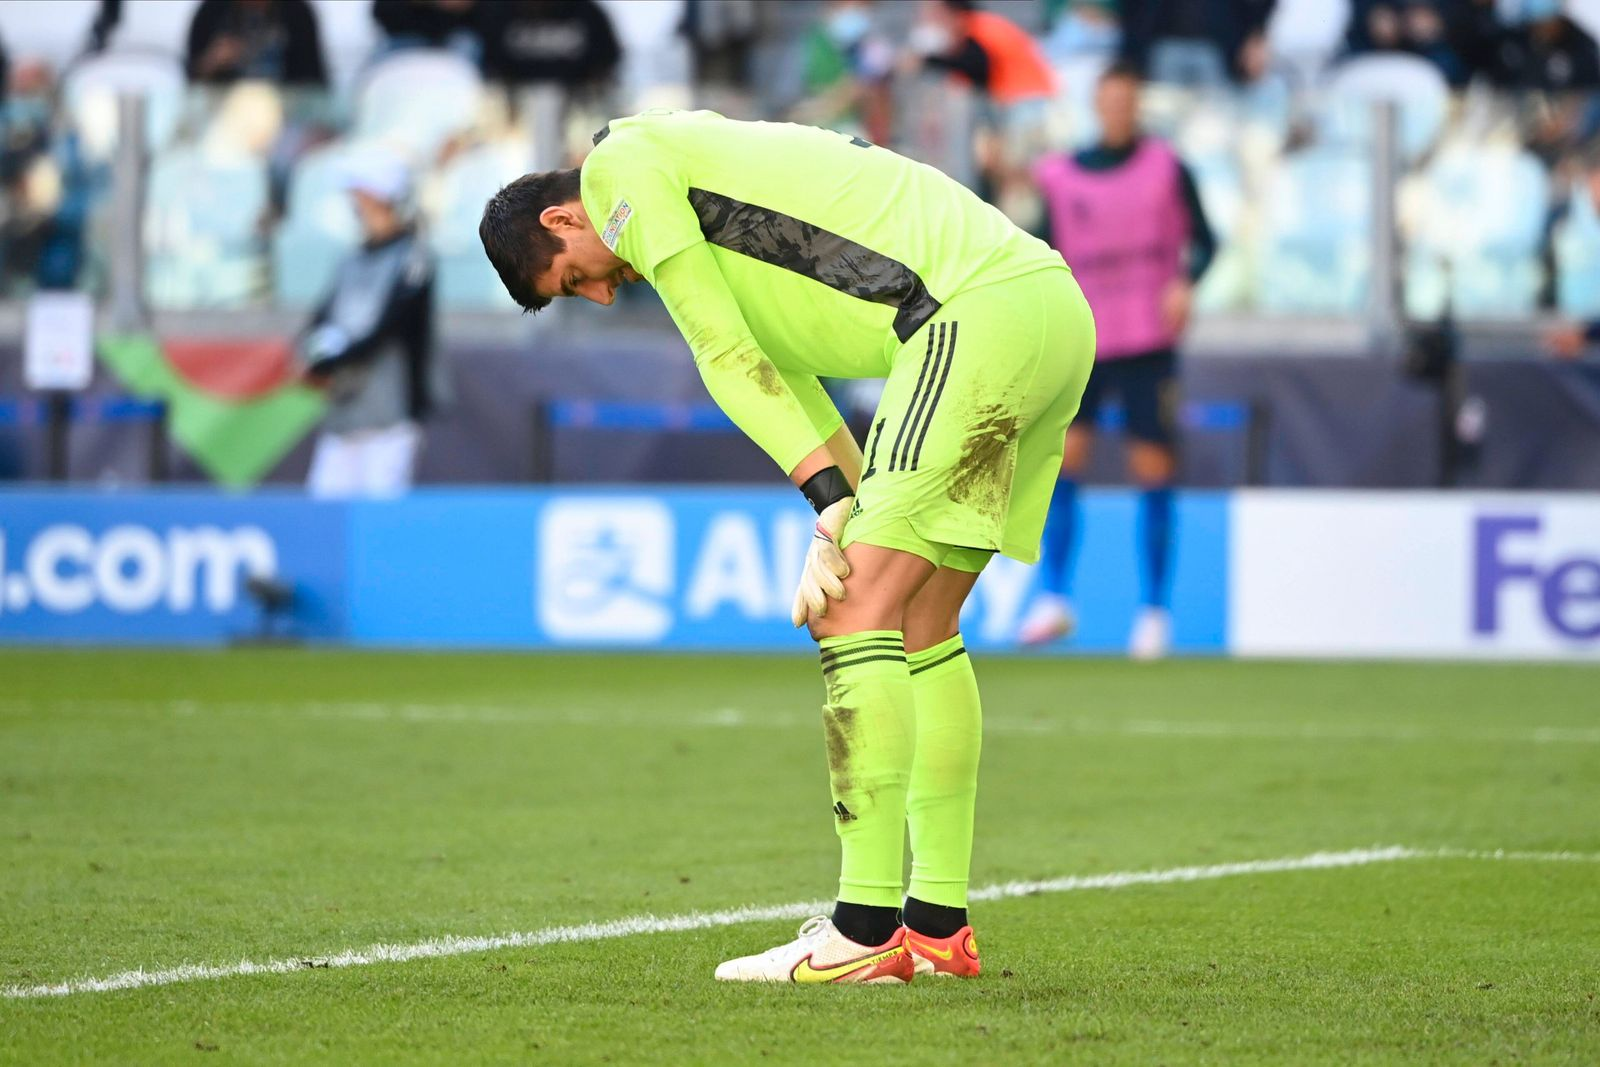 TORINO, ITALY - OCTOBER 10 : Thibaut Courtois goalkeeper of Belgium during to the UEFA Nations League Finals 2021 Third